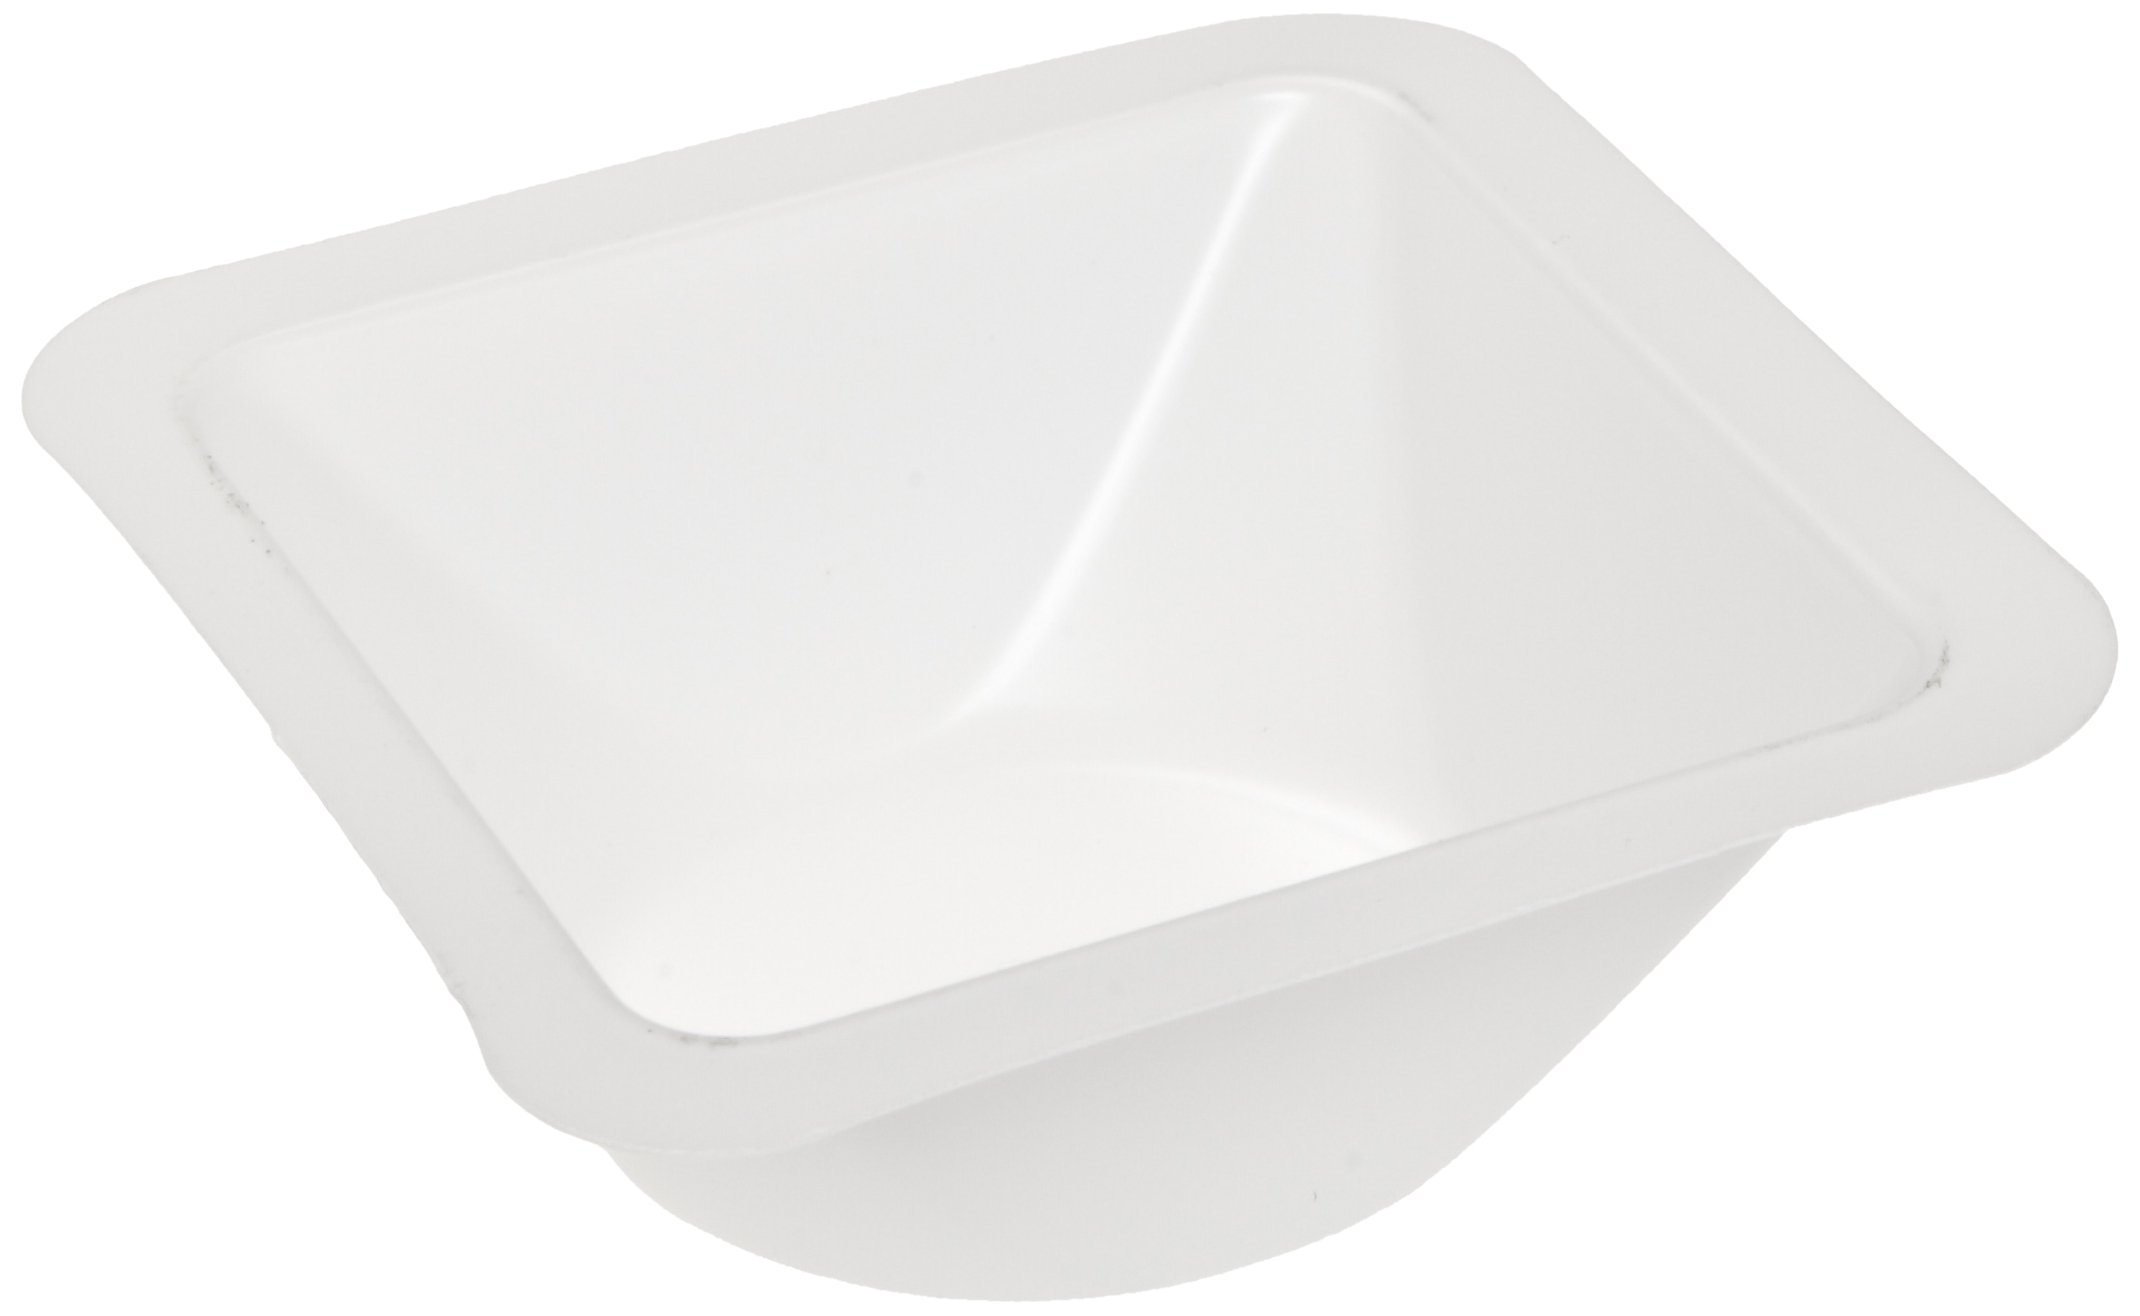 Heathrow Scientific HS1420CC Standard Weighing Boat, Polystyrene, Antostatic, Large, 140 mm L x 140 mm W x 22 mm D, White (Pack of 500)